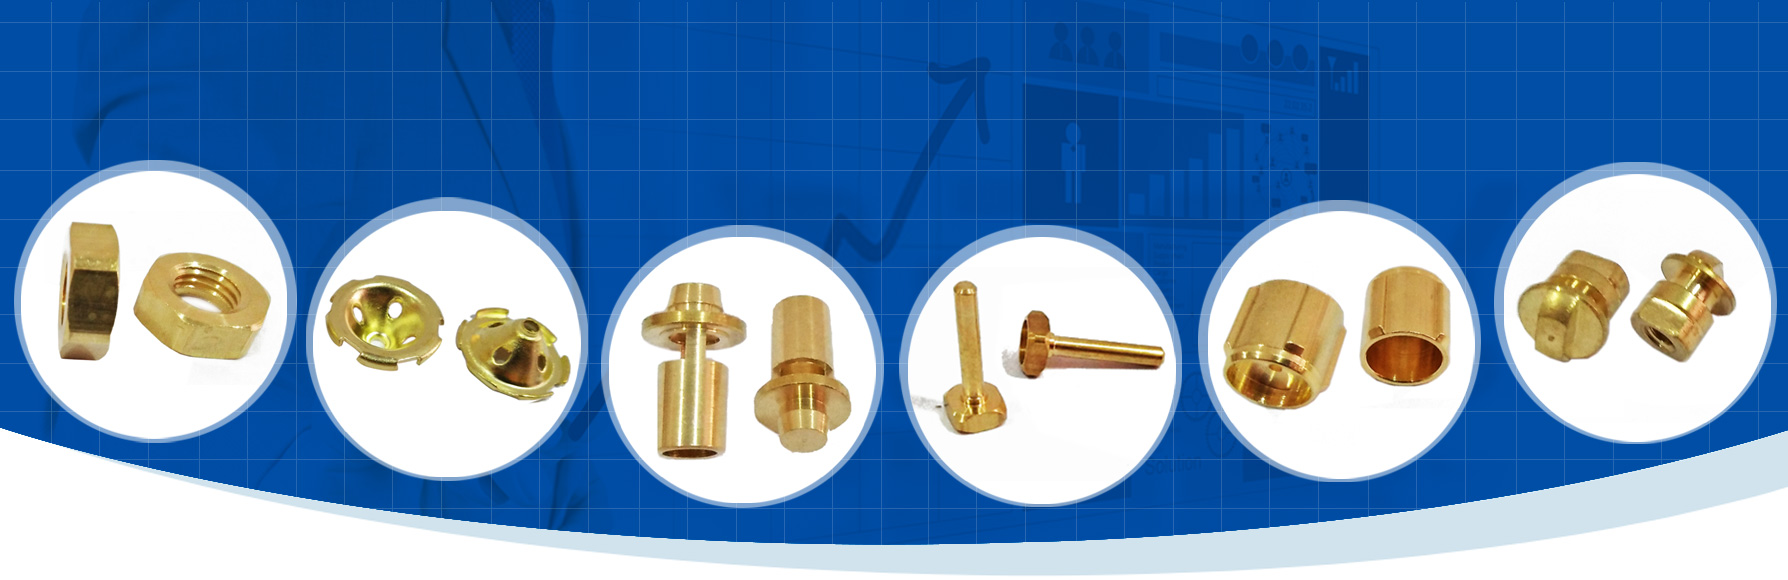 LPG Regulator and Valve Components